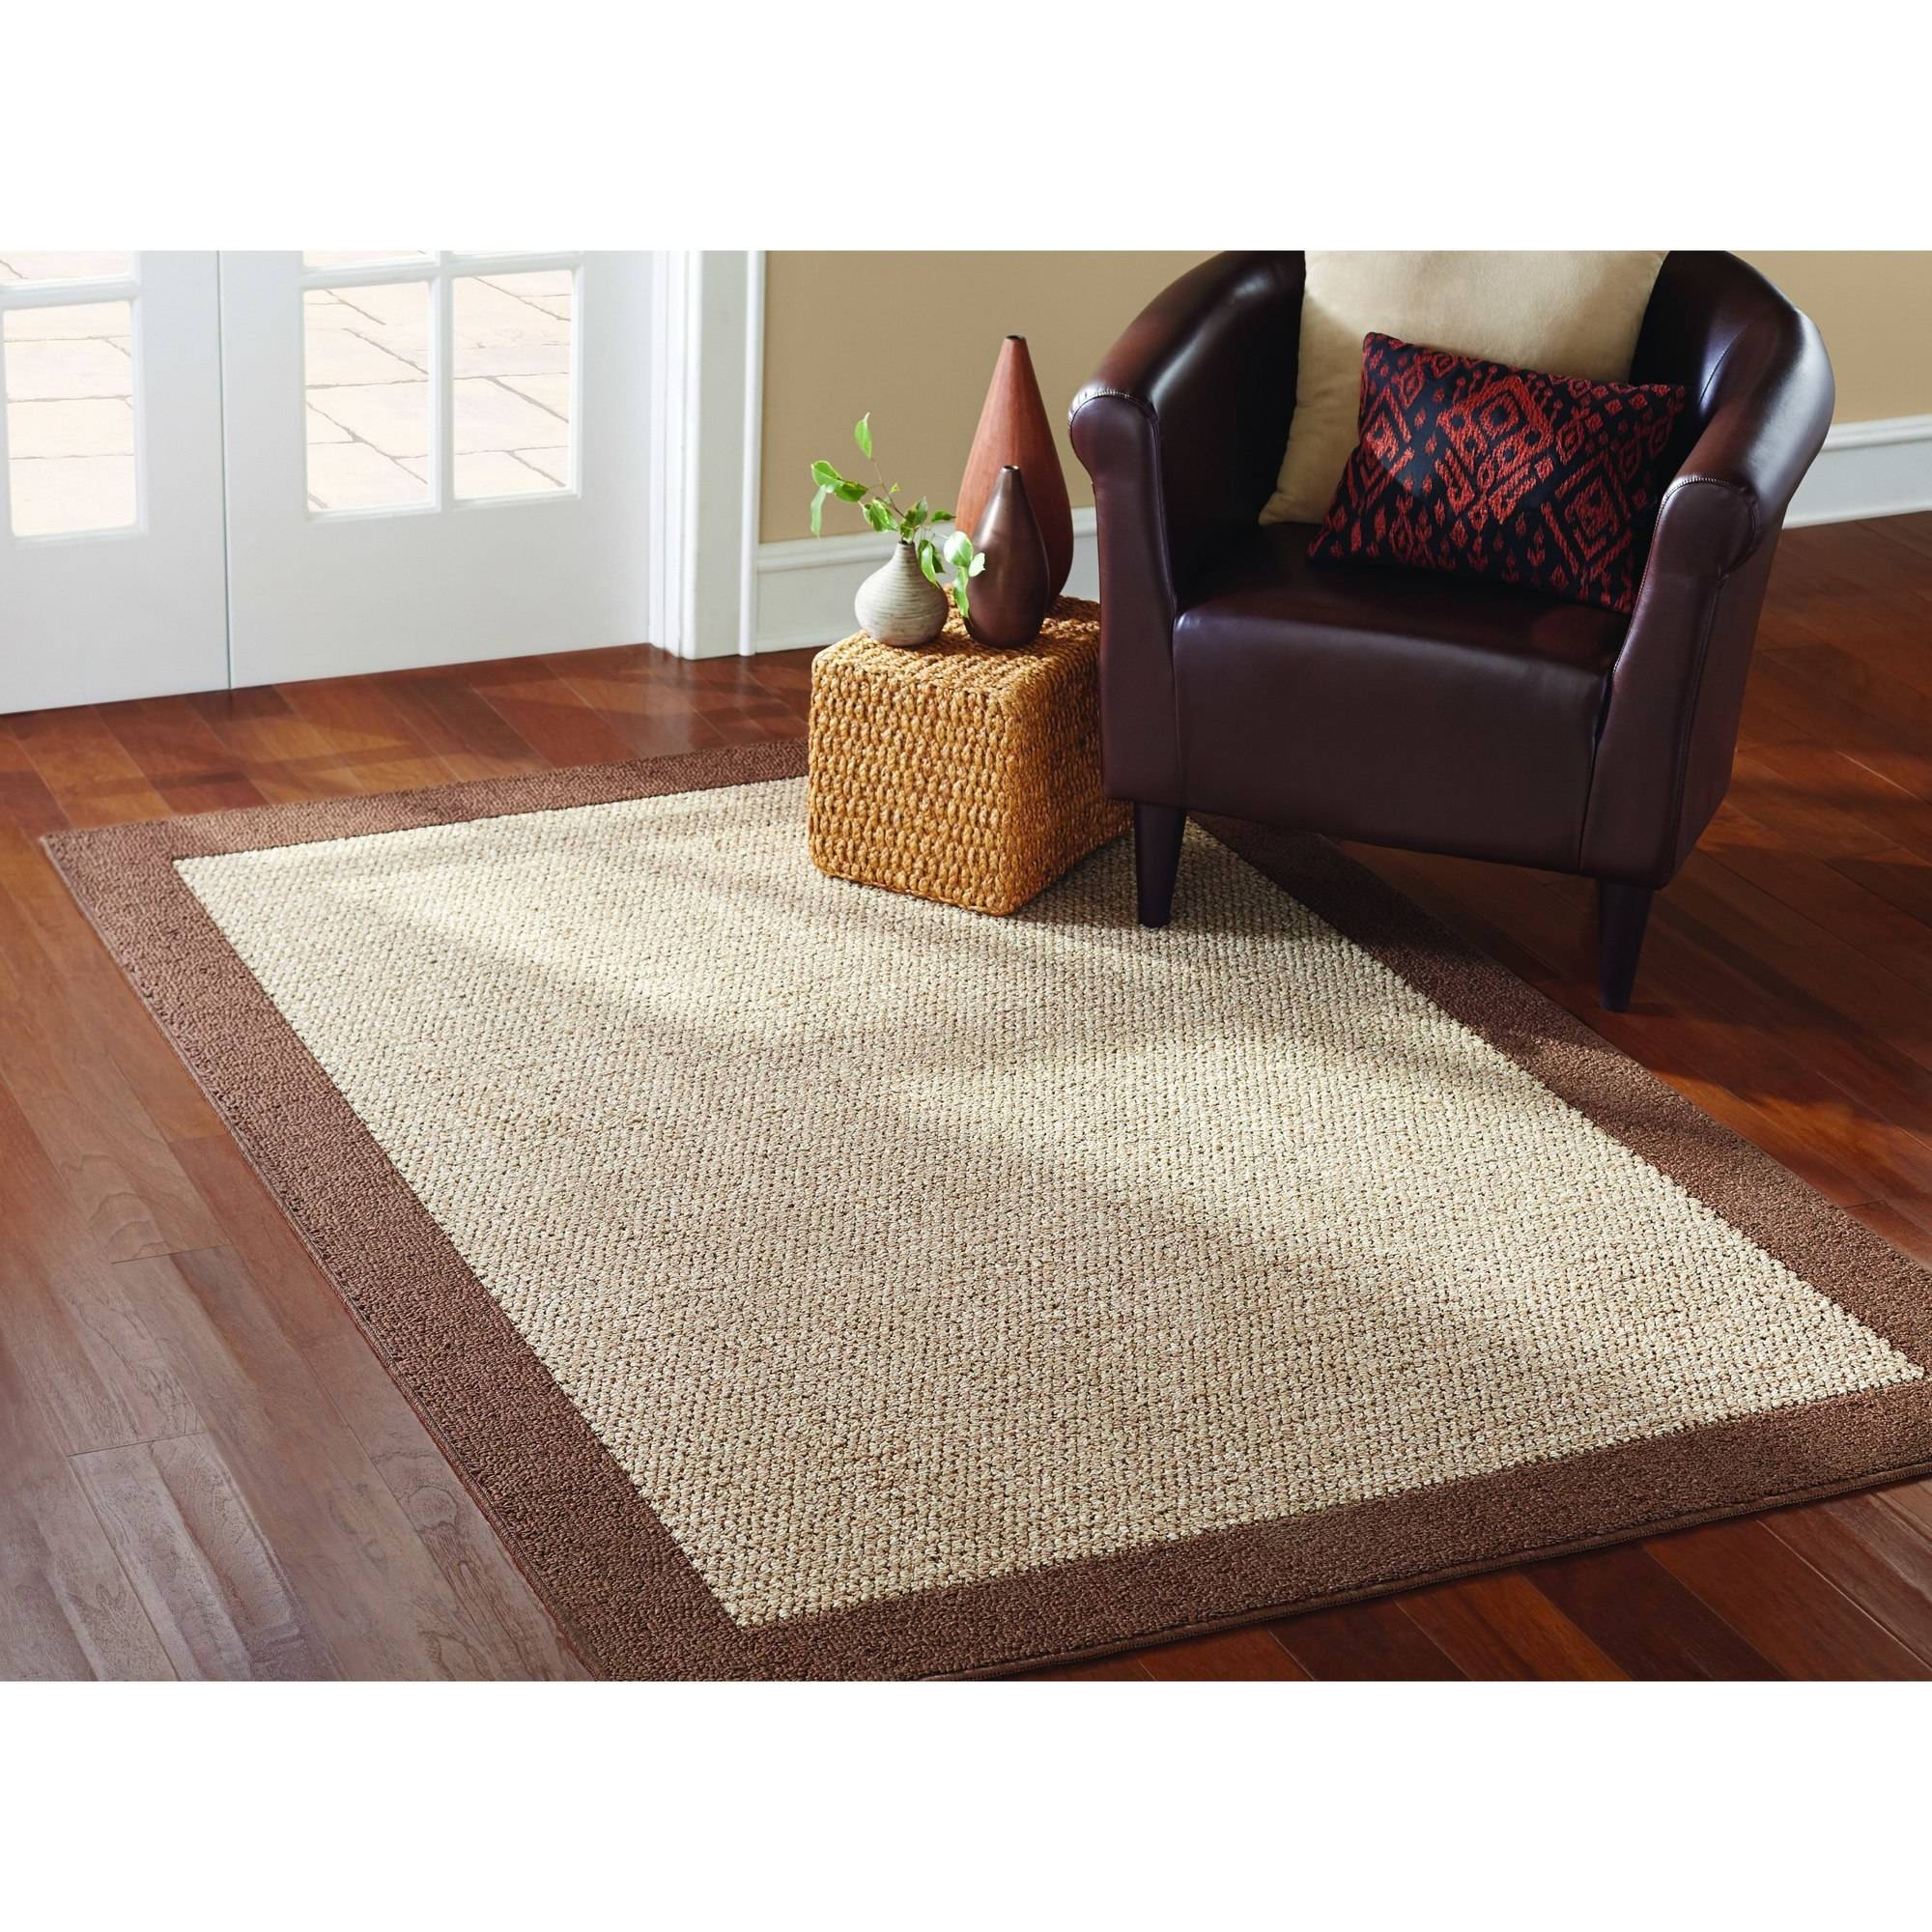 Great Mainstays Faux Sisal Area Rugs Or Runner   Walmart.com